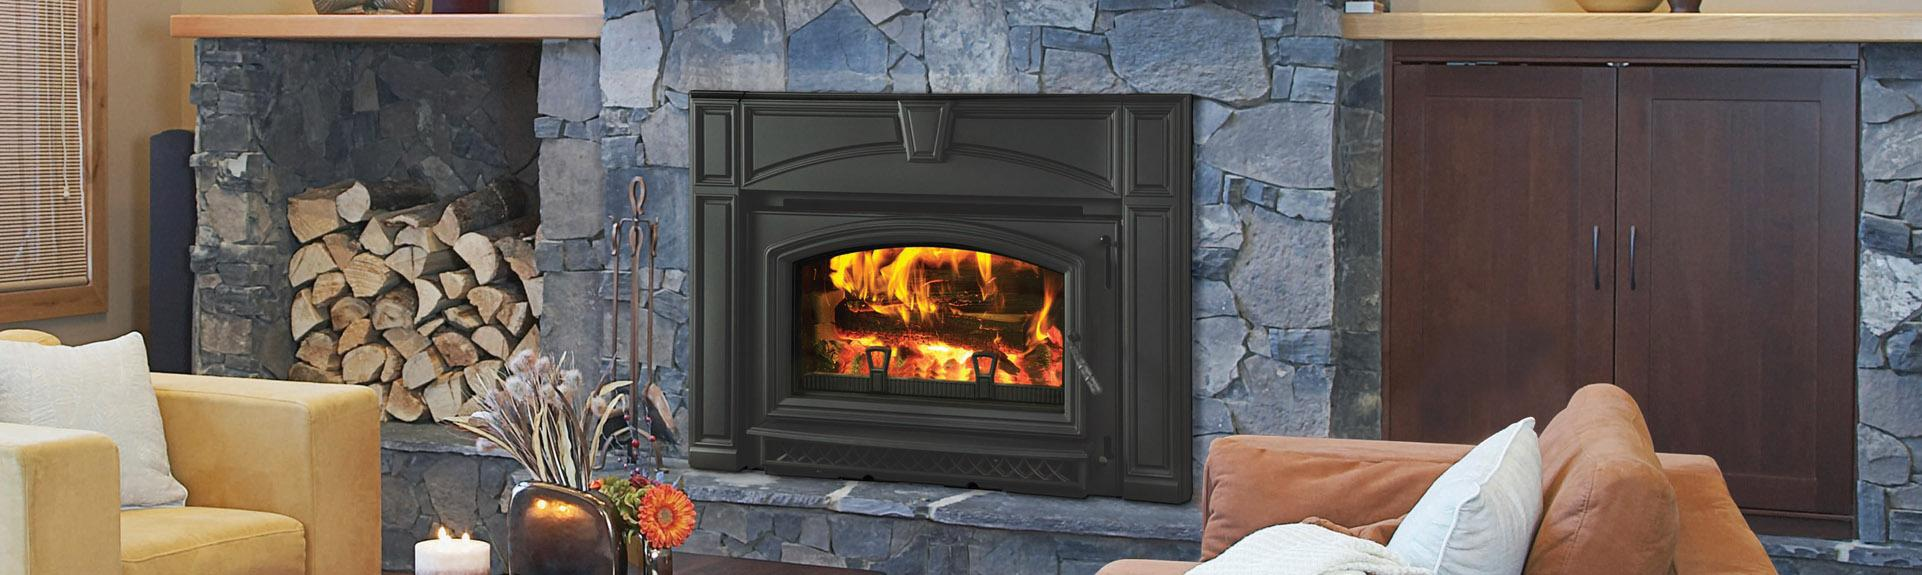 wood stove fireplace freehold township monmouth county nj